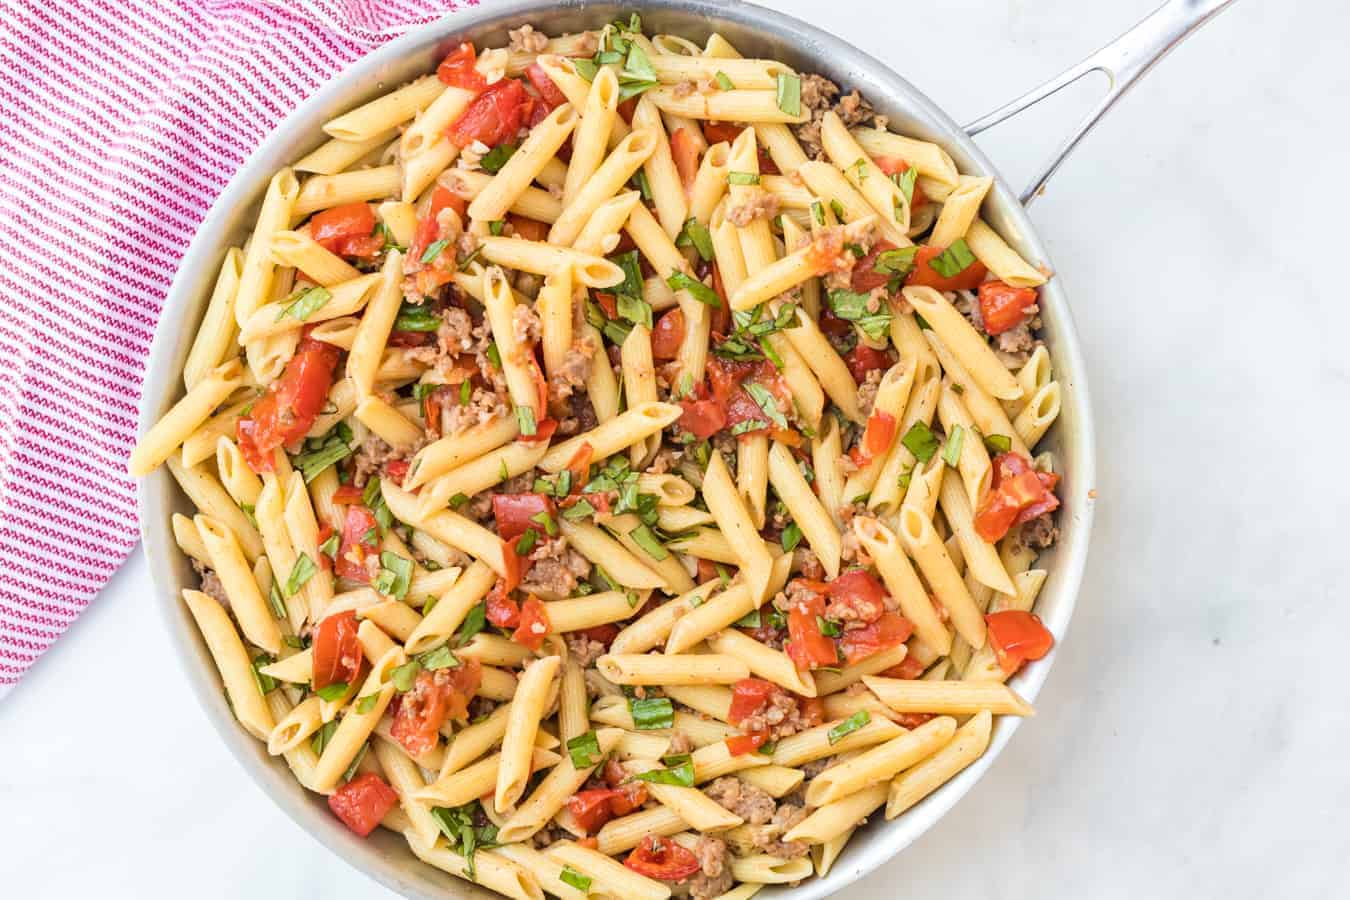 Image of a Pot of Roasted Tomato & Sausage Pasta